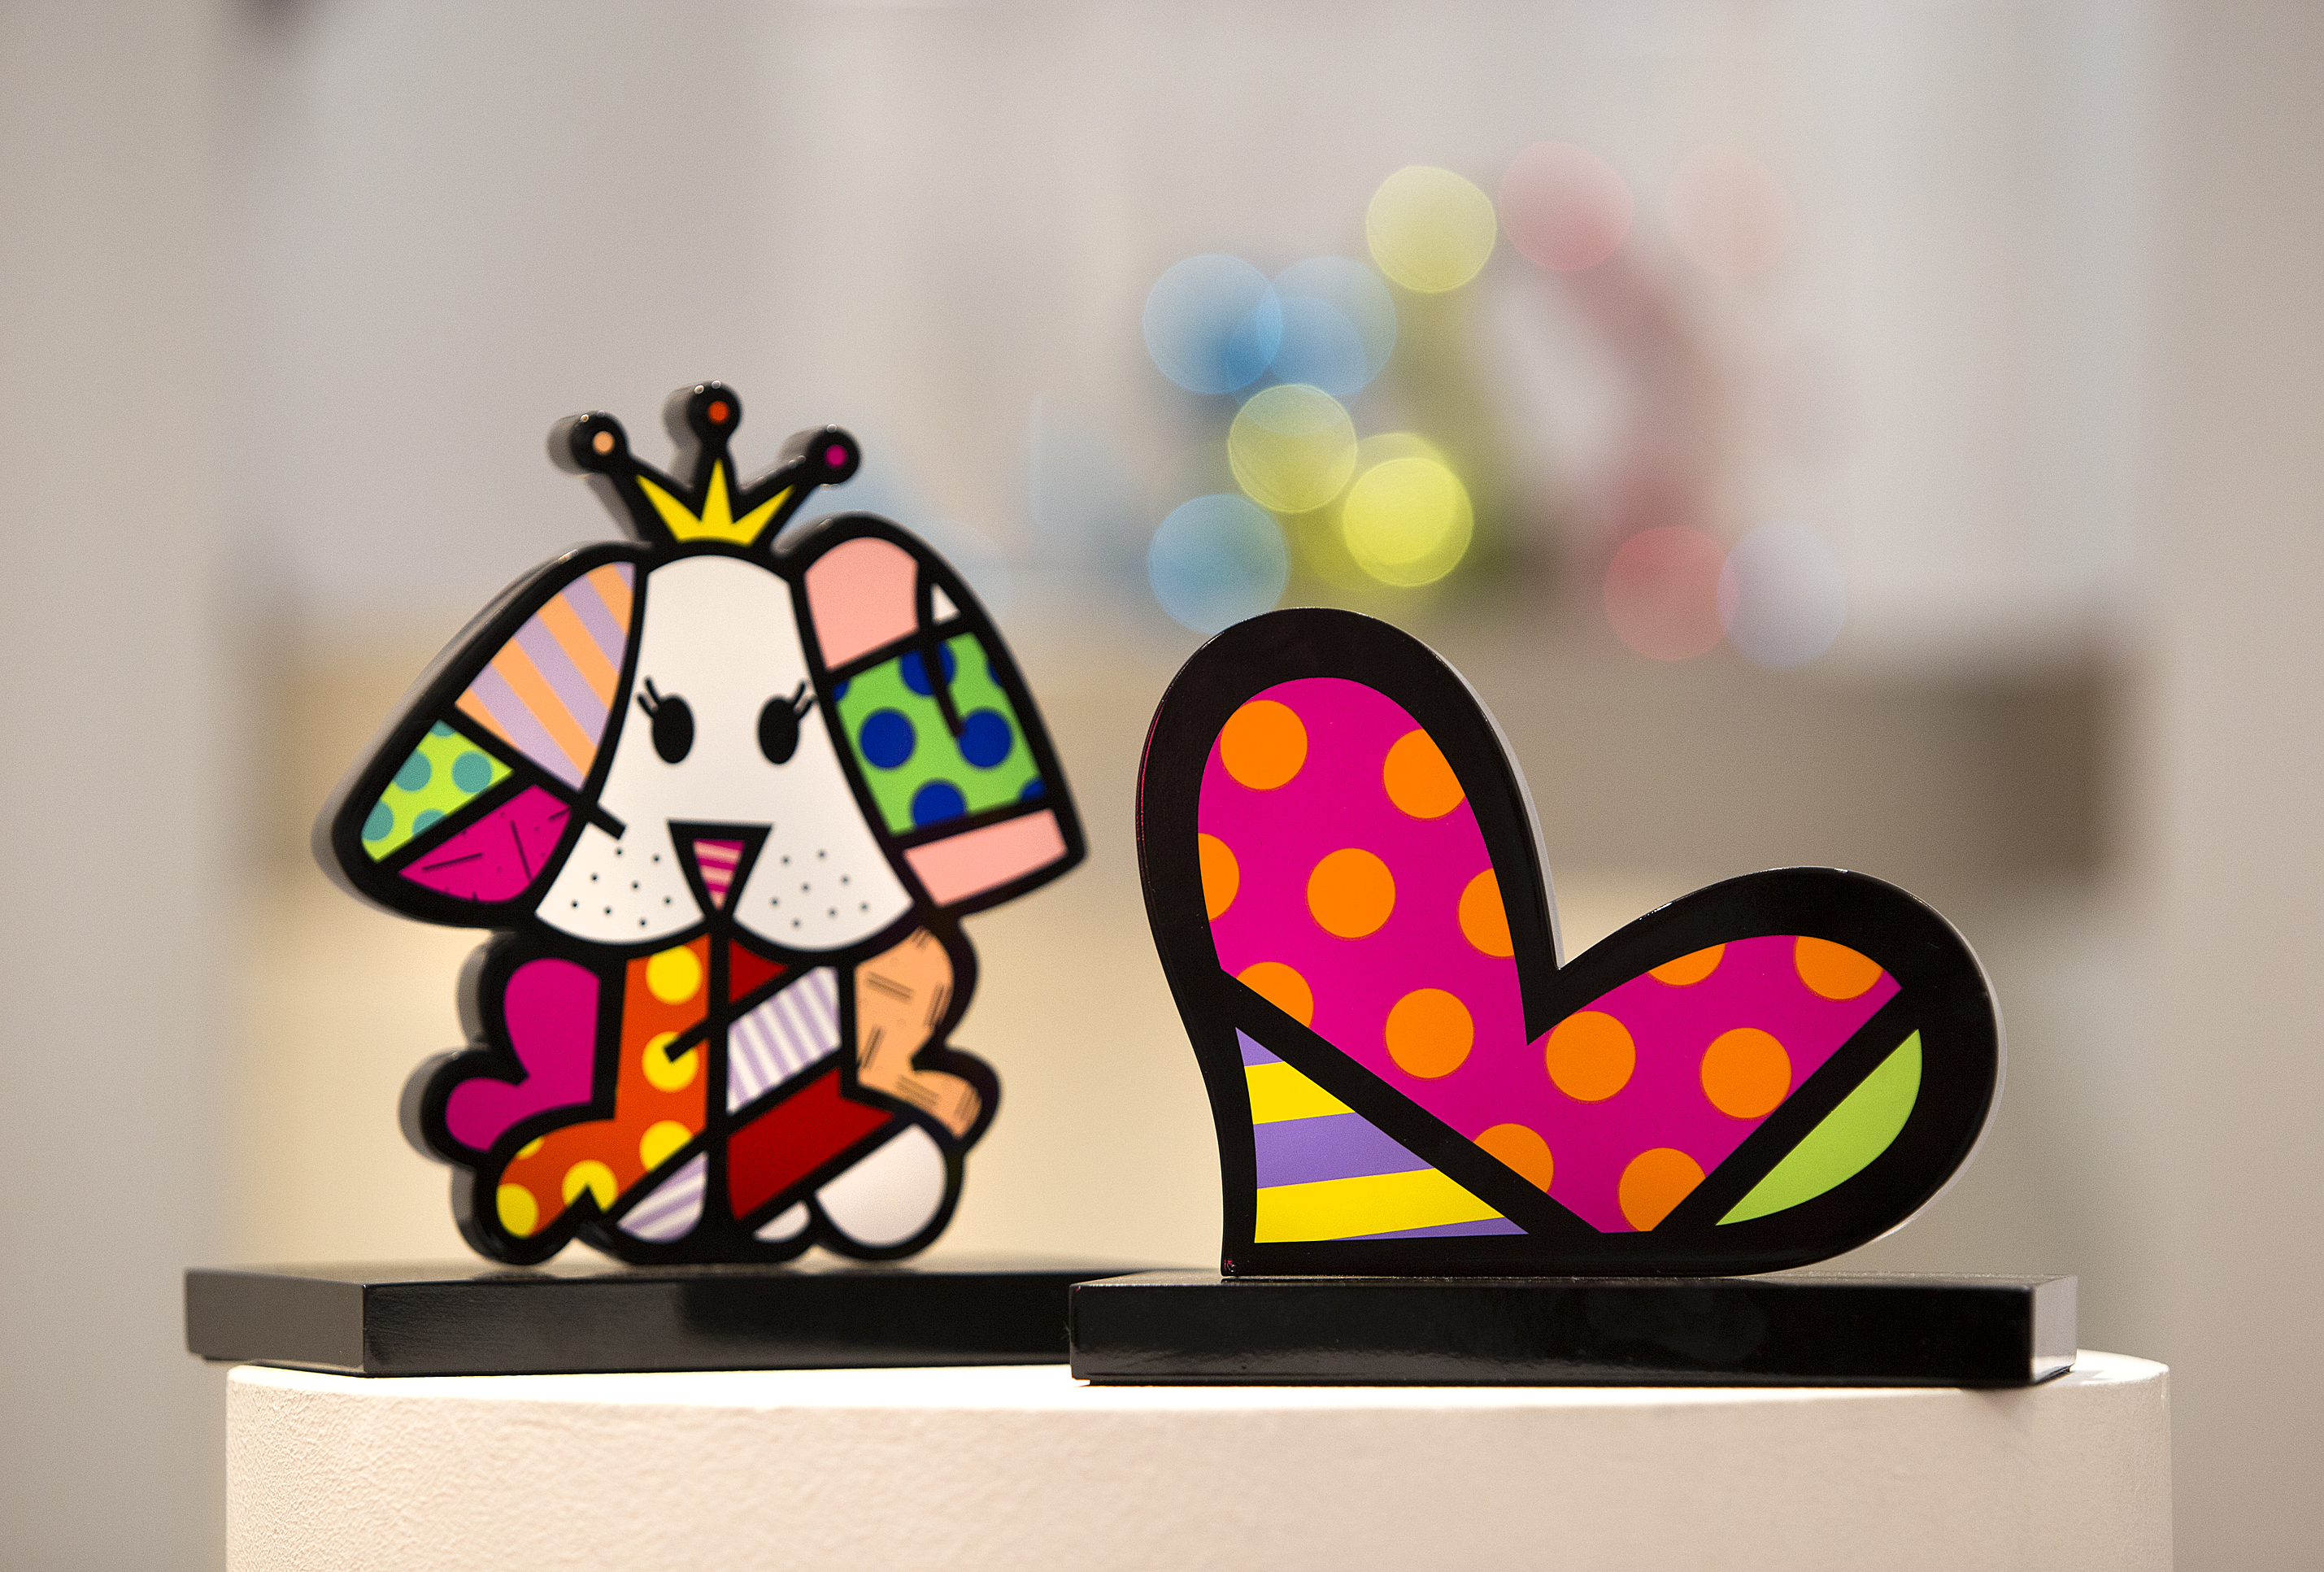 Romero Britto: New Sculptures in Limited Edition